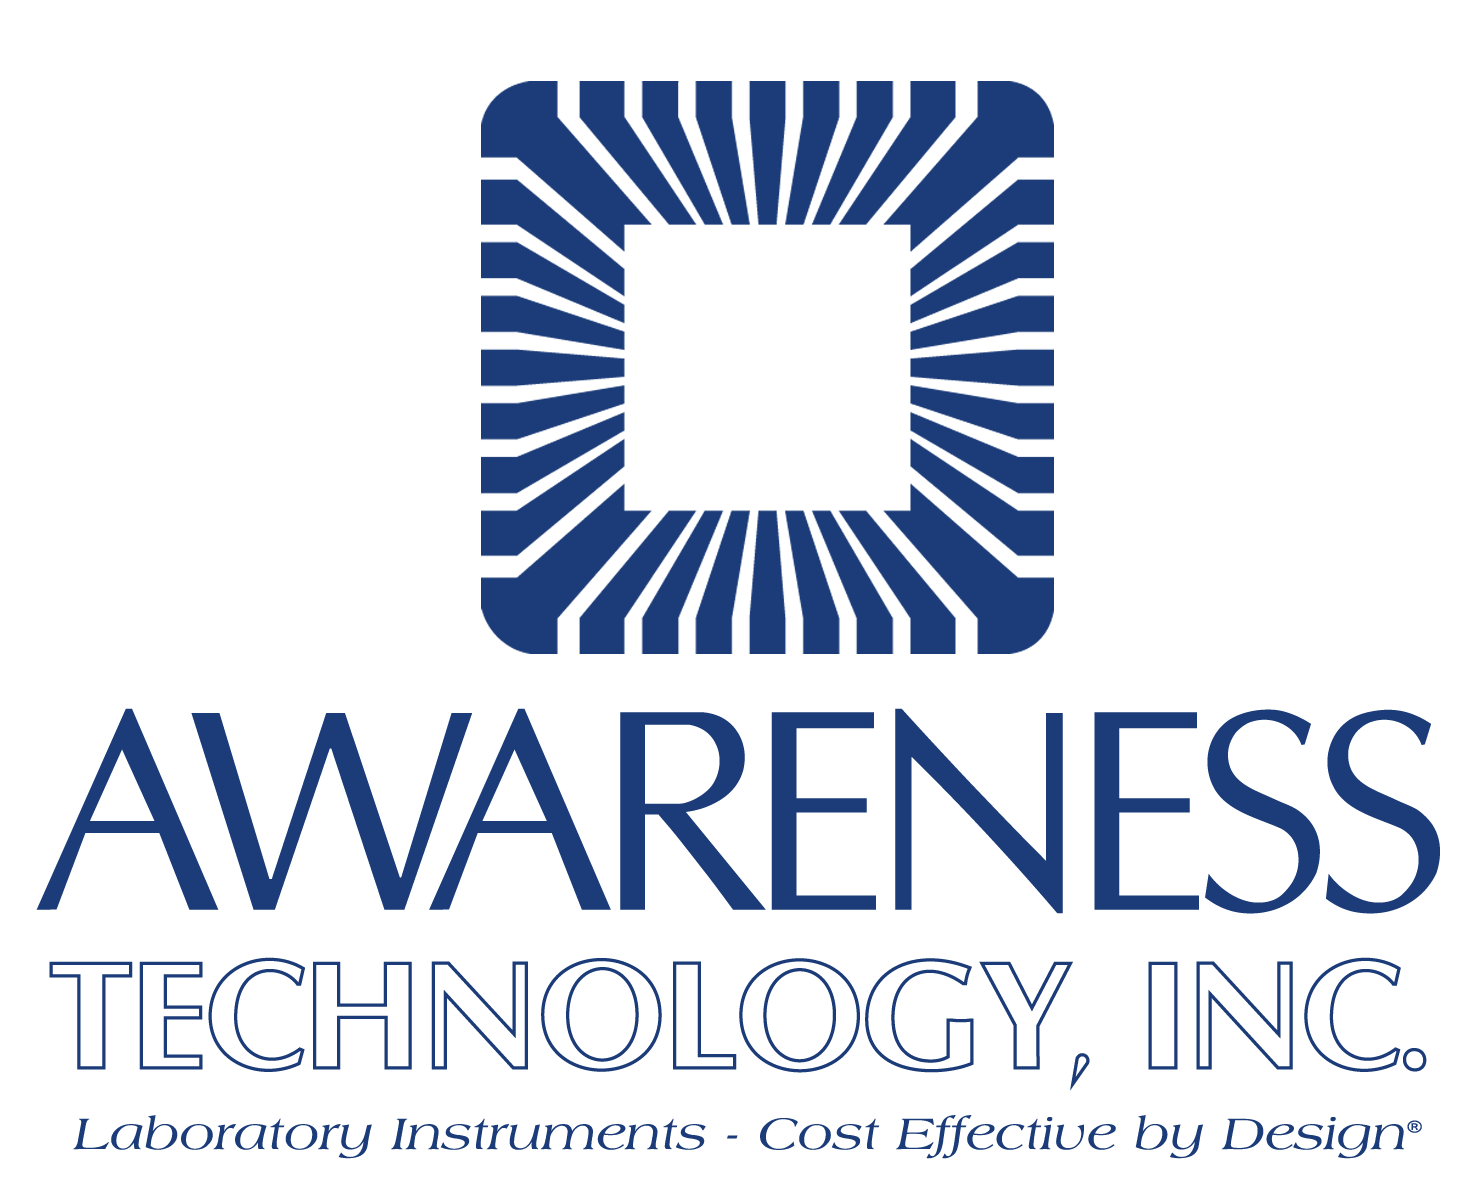 Awareness technology